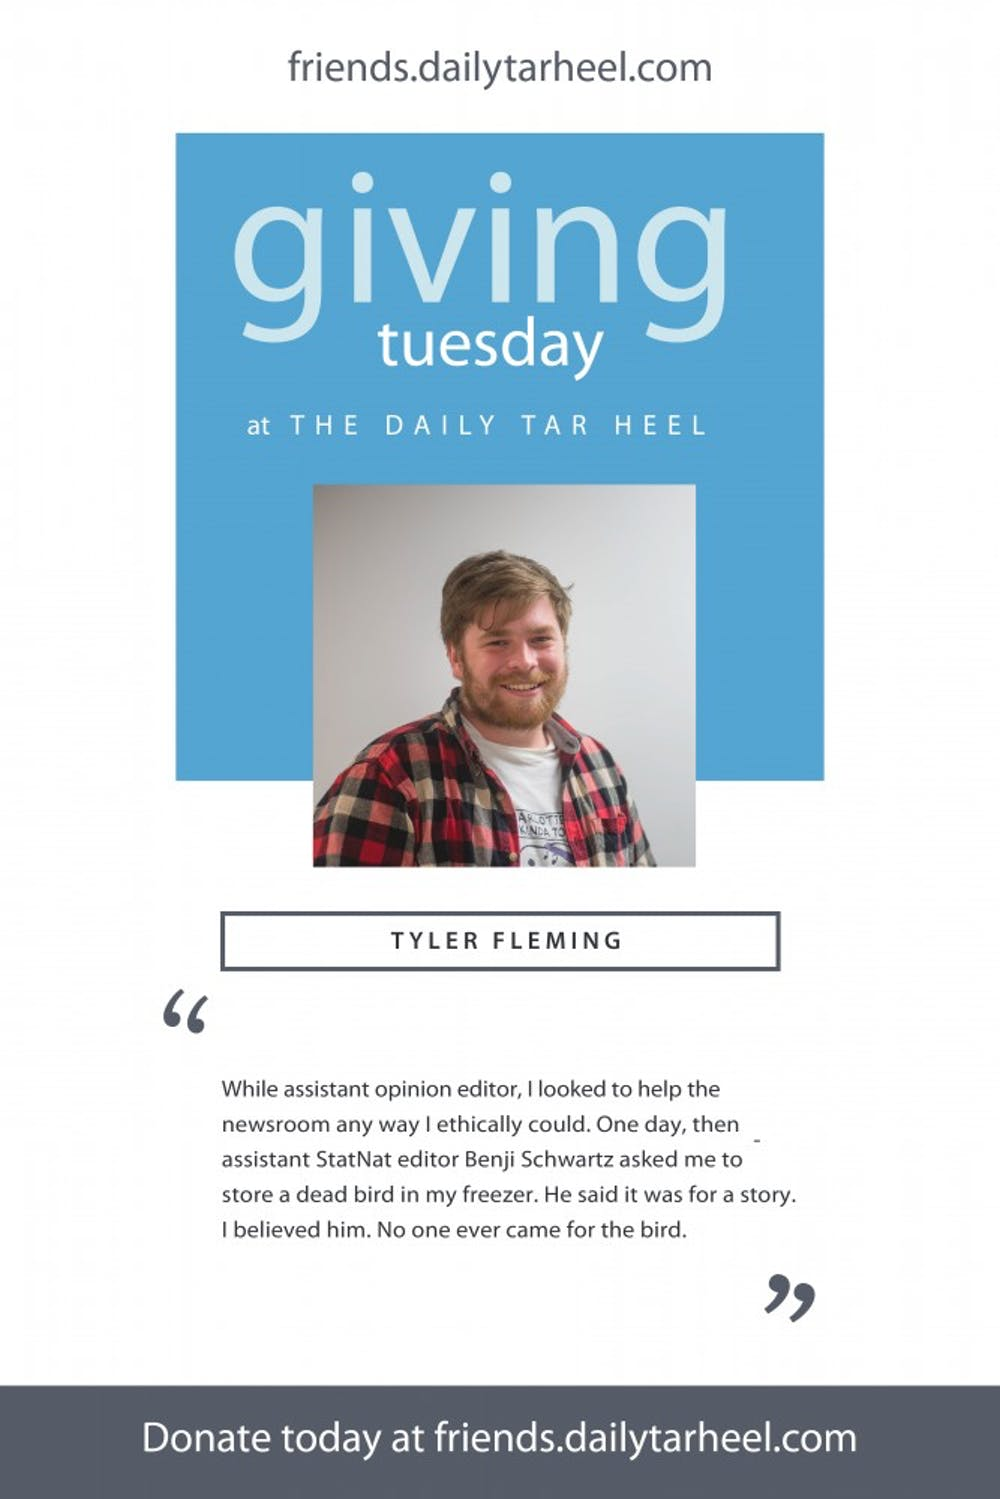 Consider donating to The Daily Tar Heel this #givingtuesday